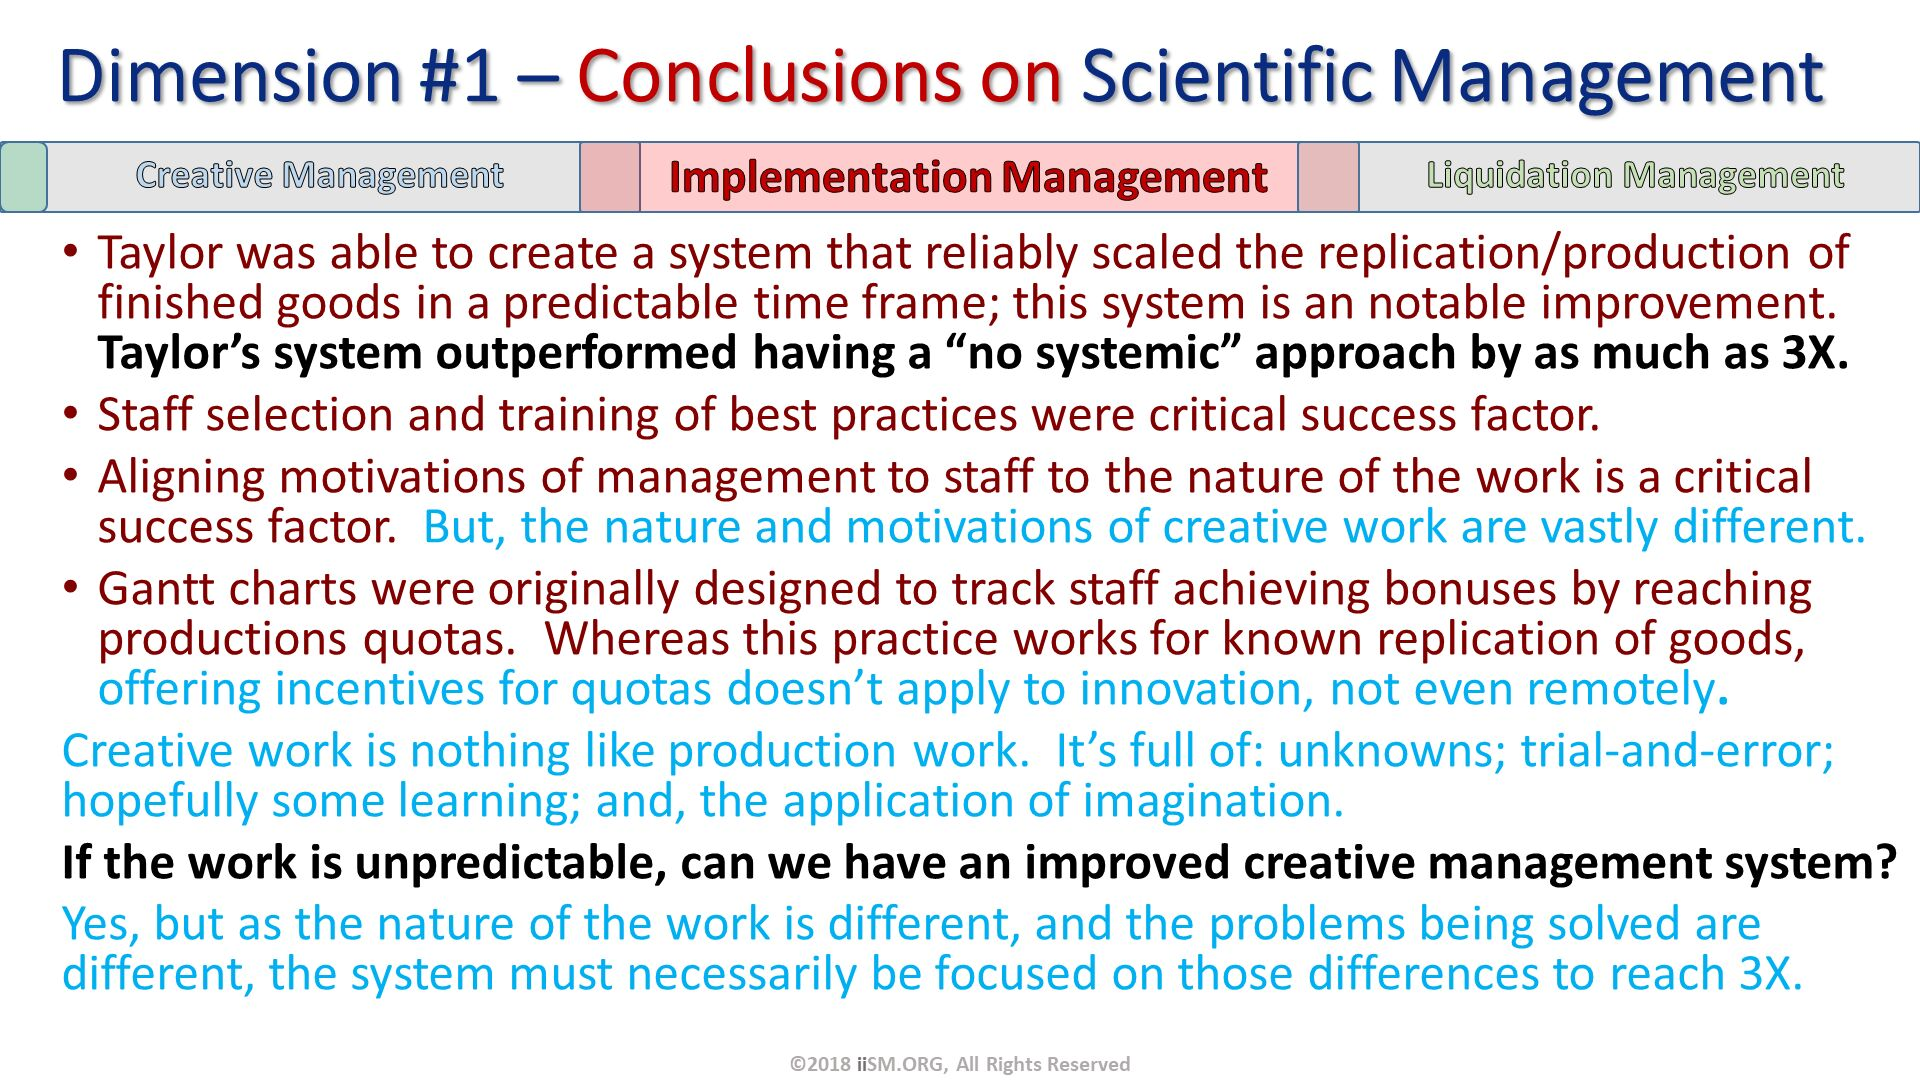 "Taylor was able to create a system that reliably scaled the replication/production of finished goods in a predictable time frame; this system is an notable improvement.  Taylor's system outperformed having a ""no systemic"" approach by as much as 3X. Staff selection and training of best practices were critical success factor. Aligning motivations of management to staff to the nature of the work is a critical success factor.  But, the nature and motivations of creative work are vastly different. Gantt charts were originally designed to track staff achieving bonuses by reaching productions quotas.  Whereas this practice works for known replication of goods, offering incentives for quotas doesn't apply to innovation, not even remotely. Creative work is nothing like production work.  It's full of: unknowns; trial-and-error; hopefully some learning; and, the application of imagination.  If the work is unpredictable, can we have an improved creative management system?  Yes, but as the nature of the work is different, and the problems being solved are different, the system must necessarily be focused on those differences to reach 3X. Dimension #1 – Conclusions on Scientific Management. ©2018 iiSM.ORG, All Rights Reserved."